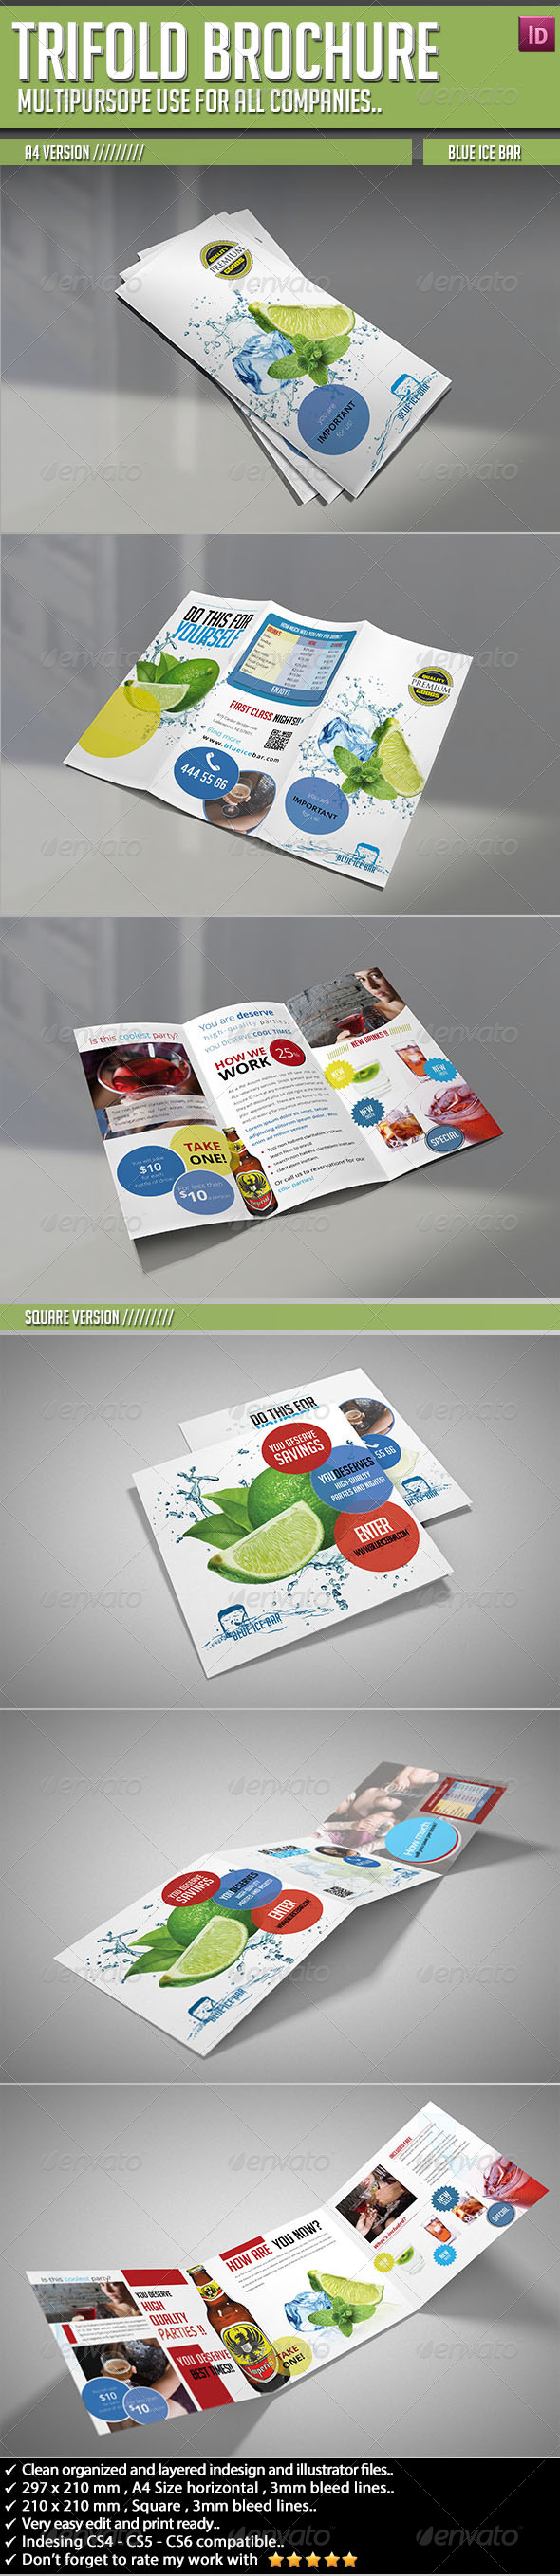 Trifold Brochure Blue Ice Bar